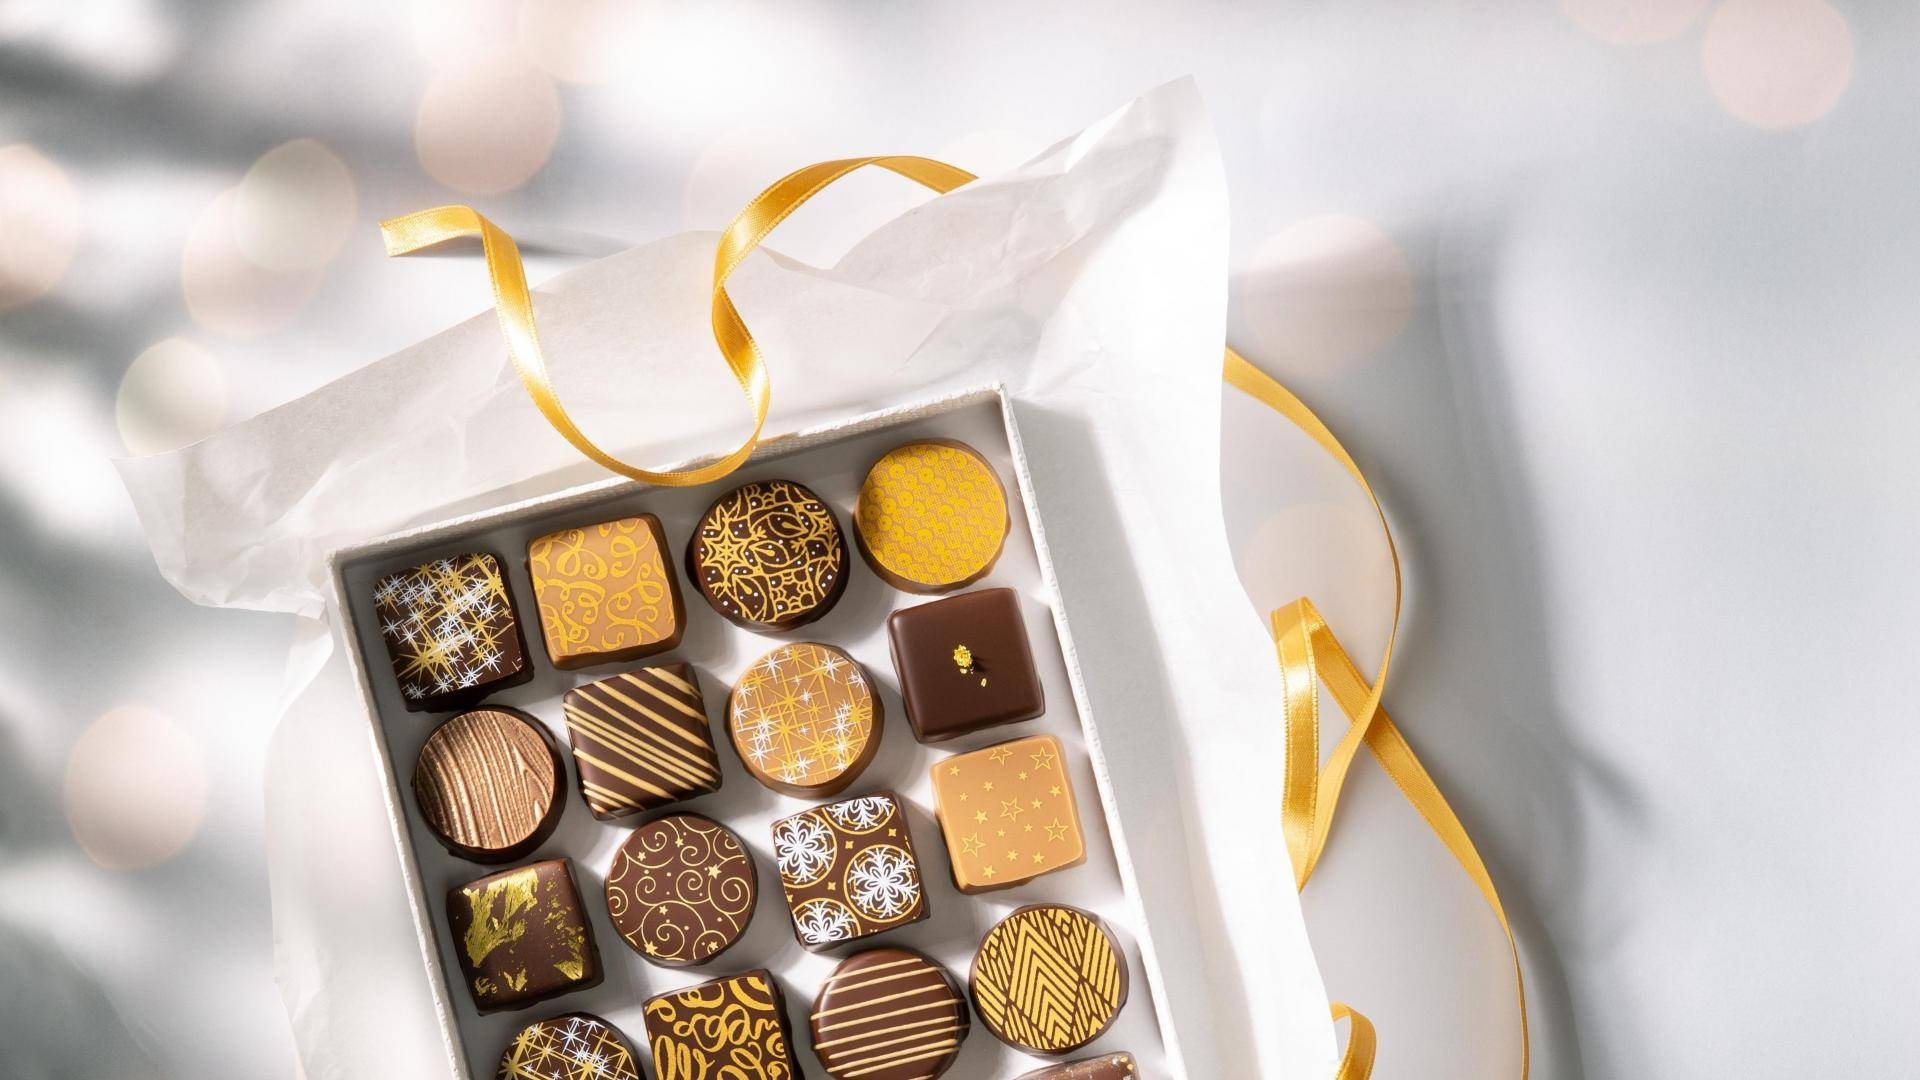 Box of chocolates with prints and structure